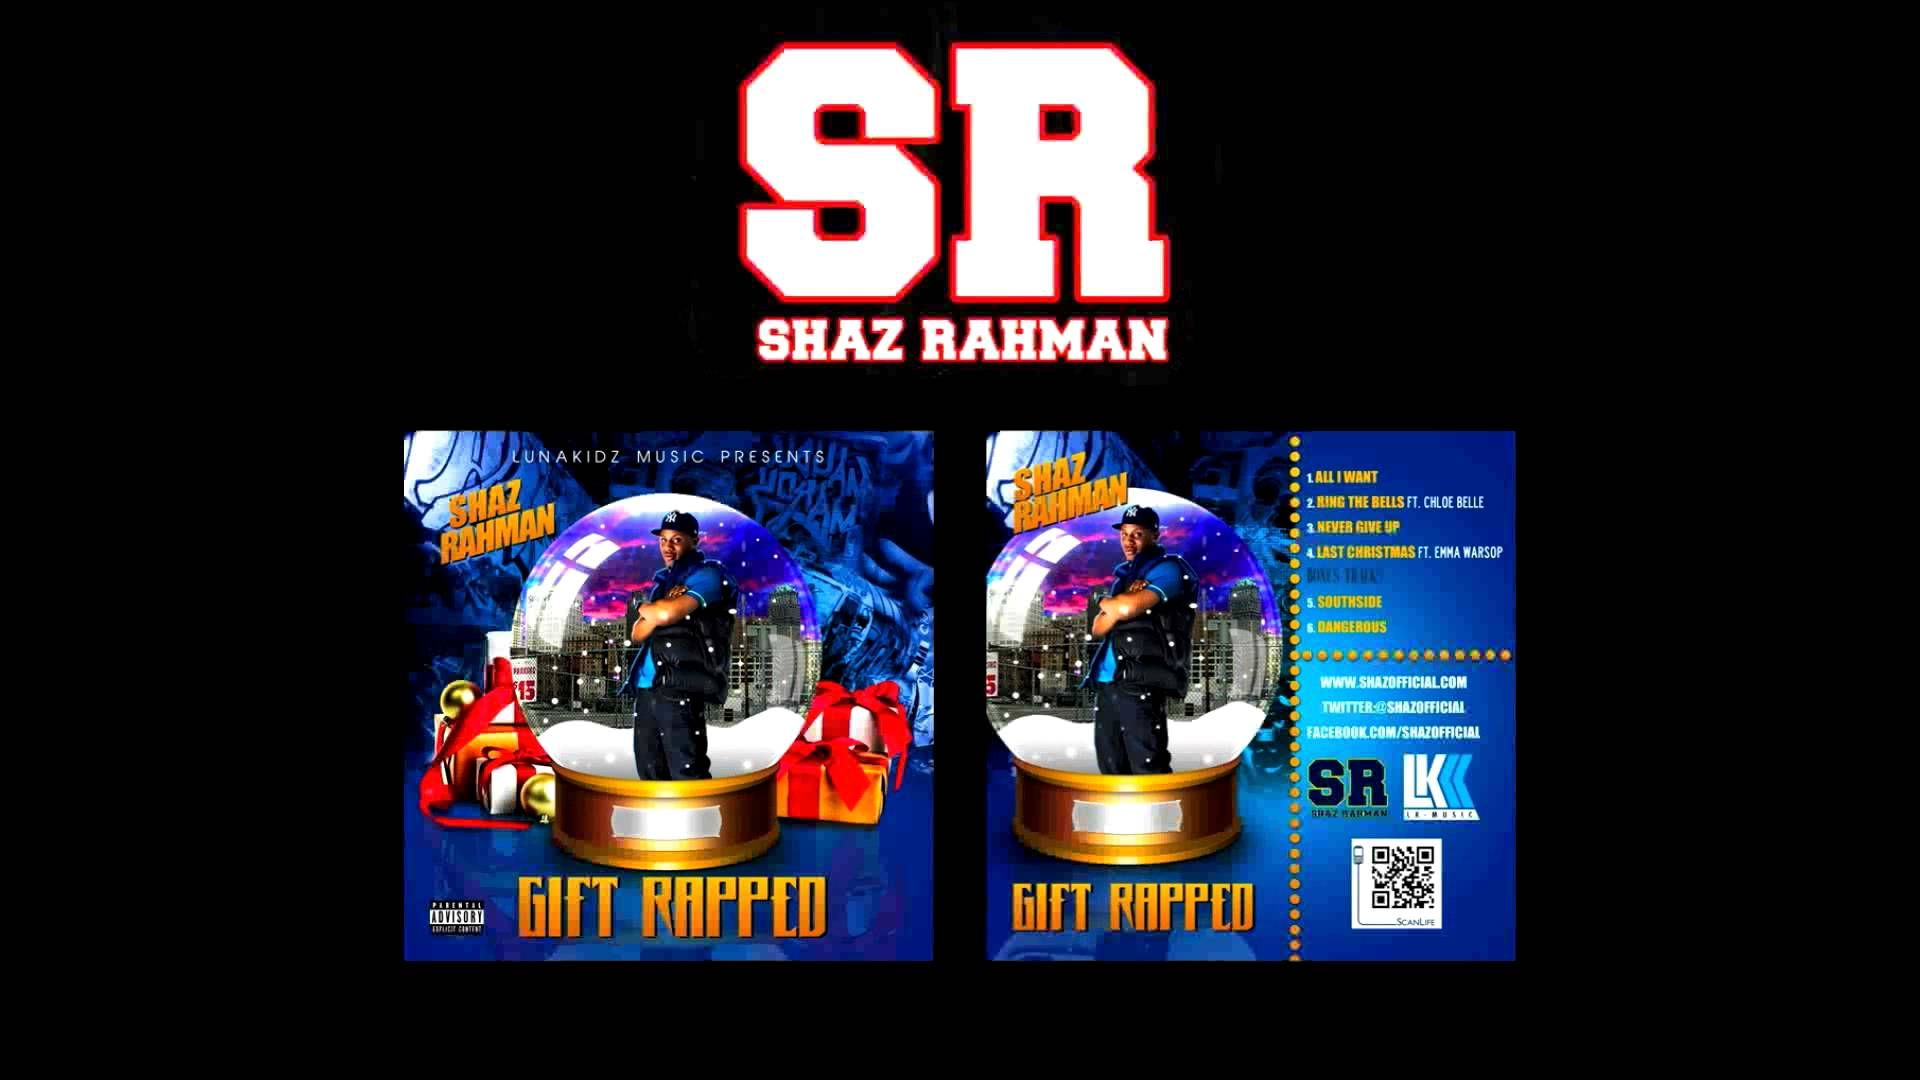 Shaz Rahman All I Want For Christmas Hip Hop Remix Shaz Rahman Remix Hiphopremix Hiphop Christmas Rnb Rnbmusic S Hip Hop Remix Rap Gifts Uk Music